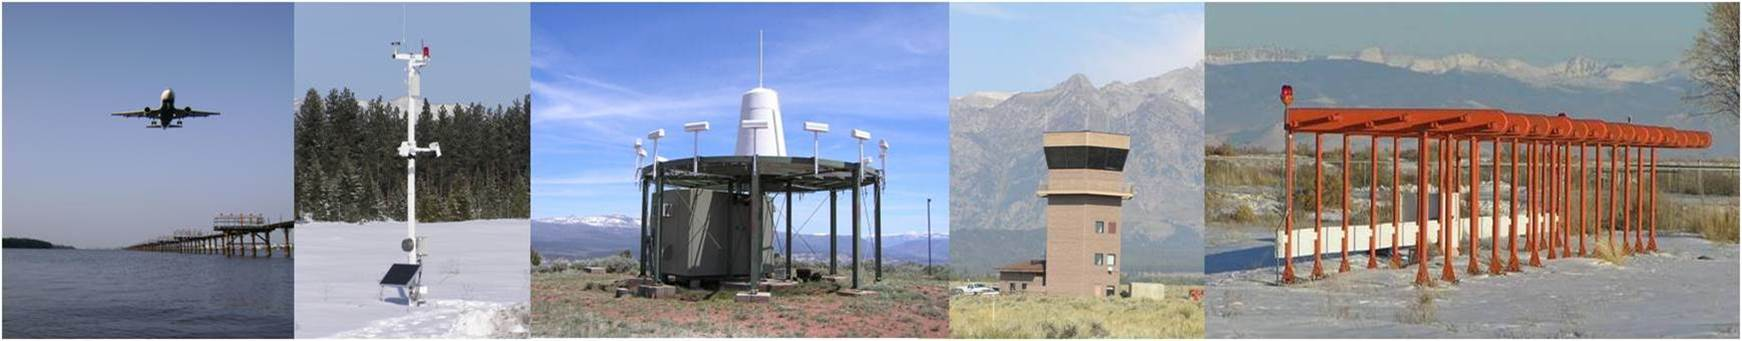 Examples of non-federal systems. From left to right: aircraft flying over an approach lighting system, Automated Weather Observing System, V H F Omni-Directional Ranges, air traffic control tower, insturment landing system